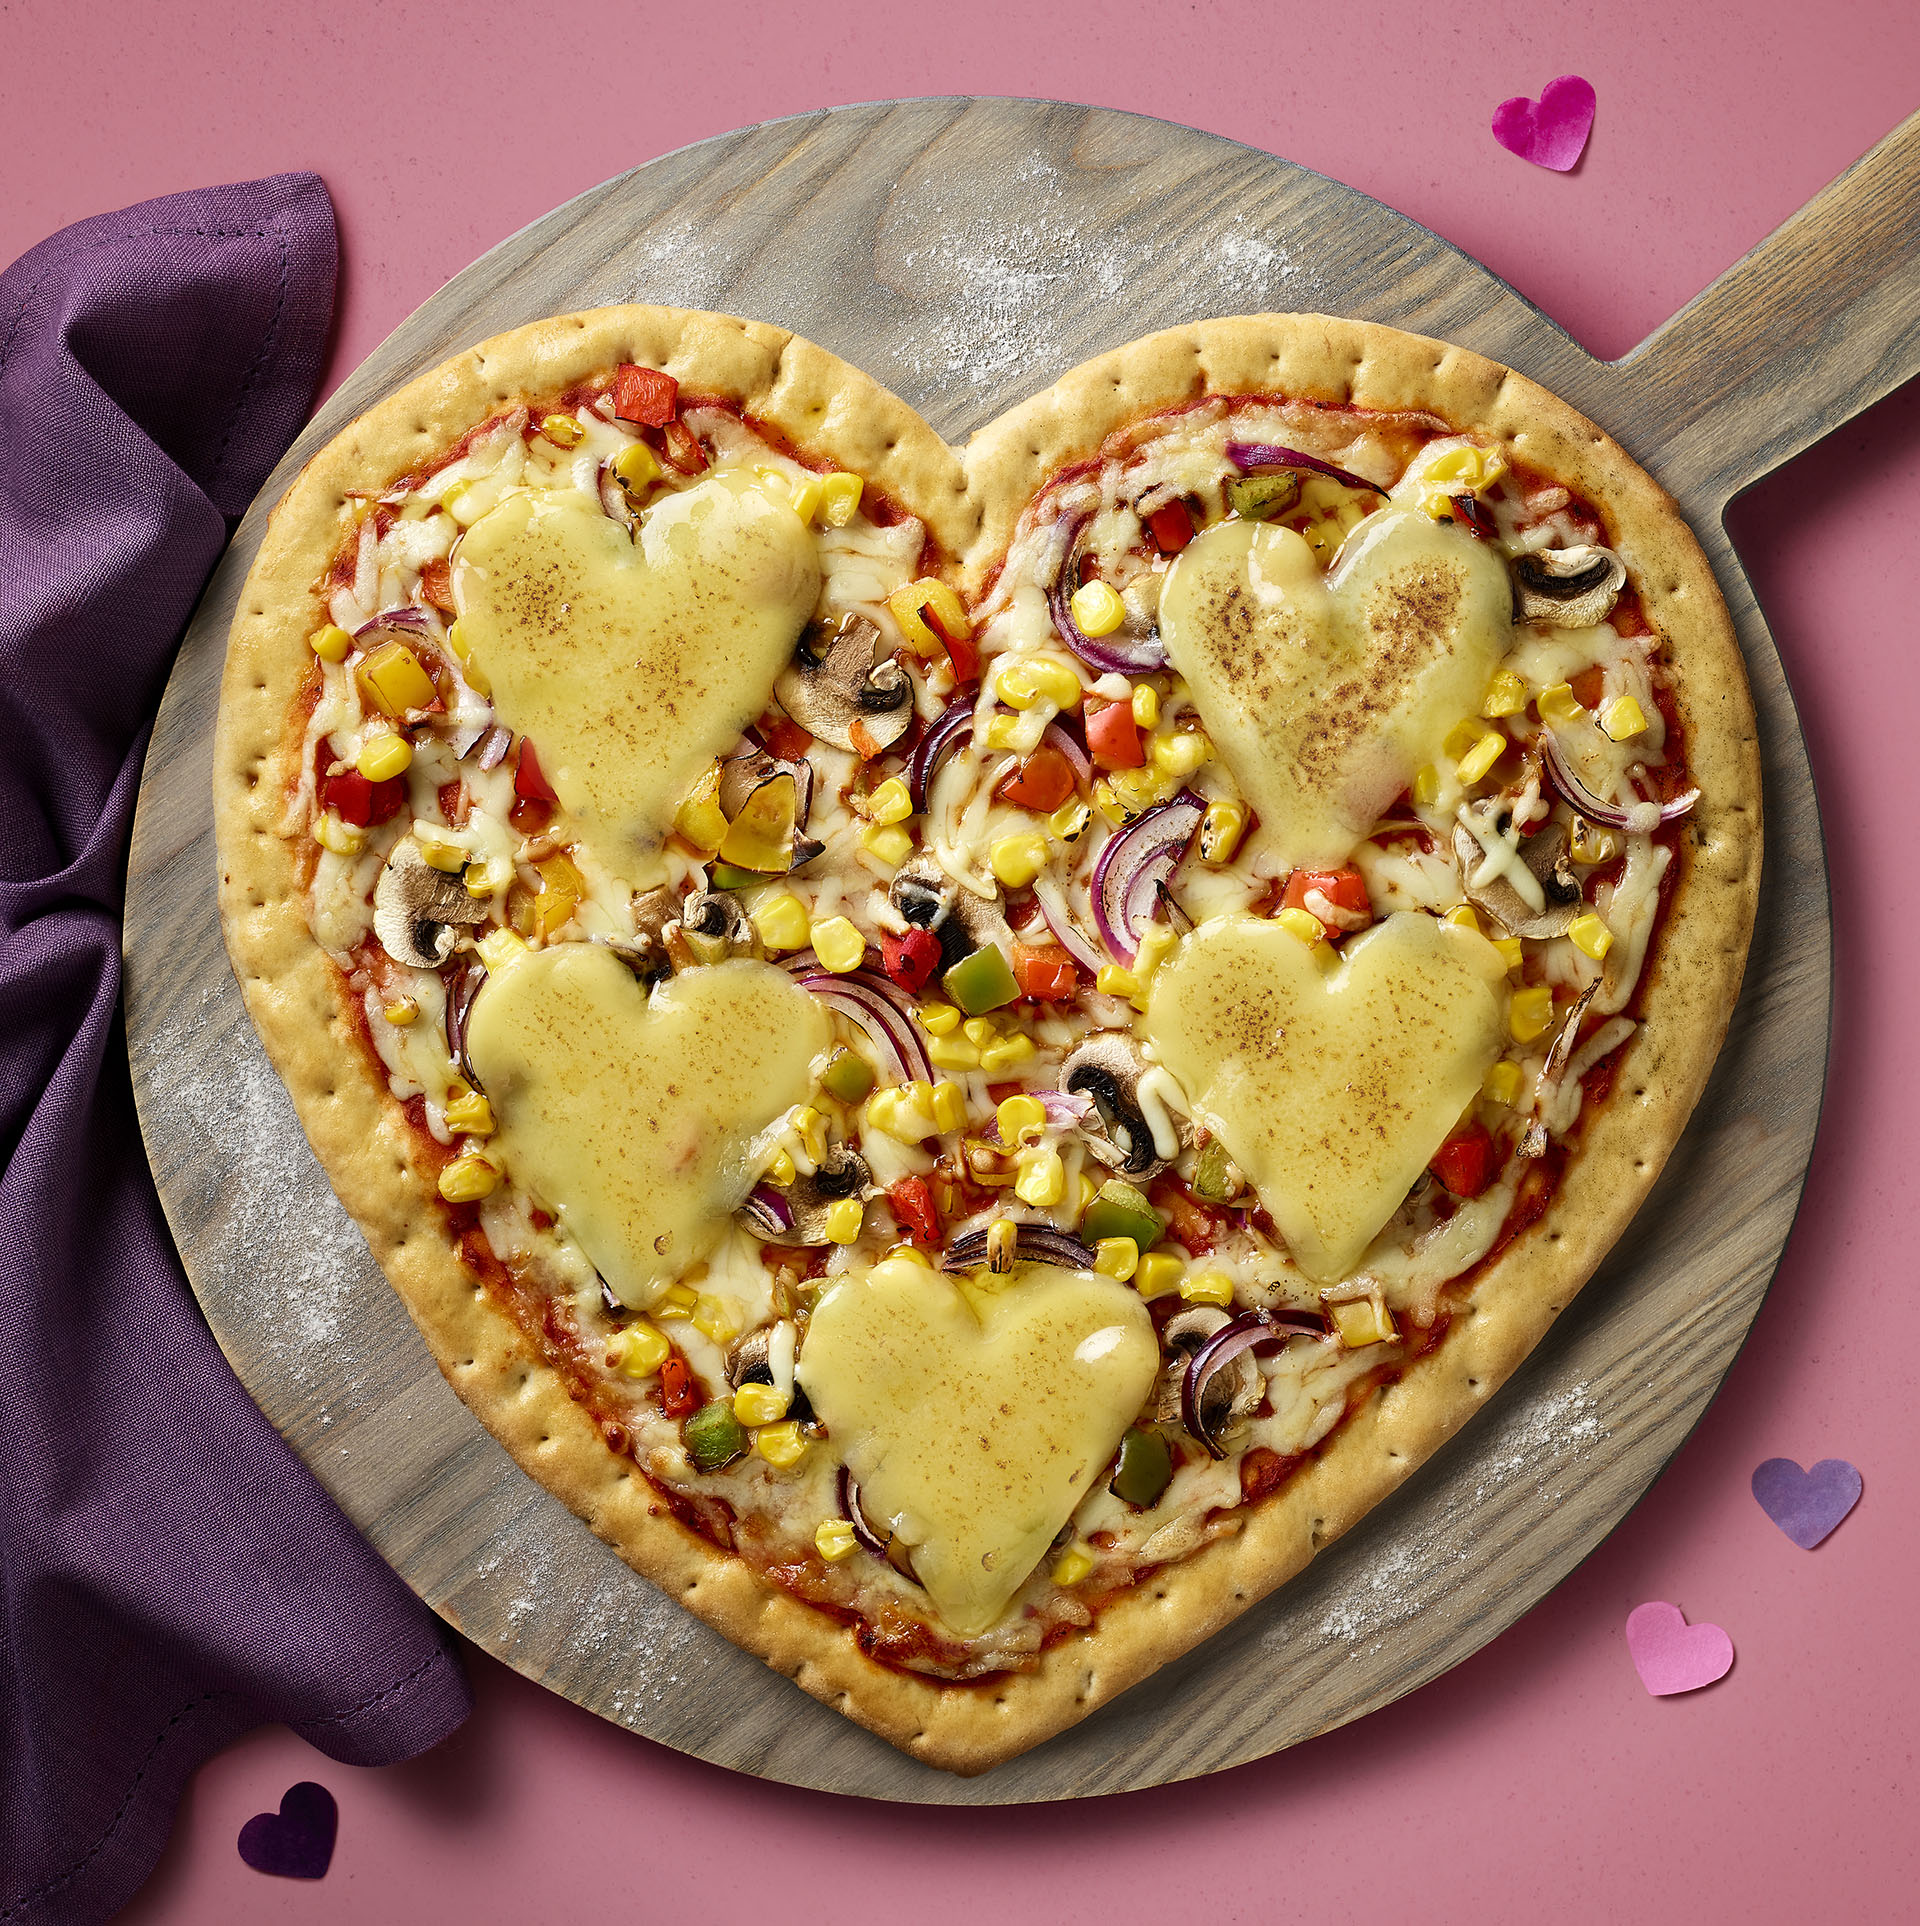 Asda Is Selling A Heart Shaped Pizza For Valentines Day